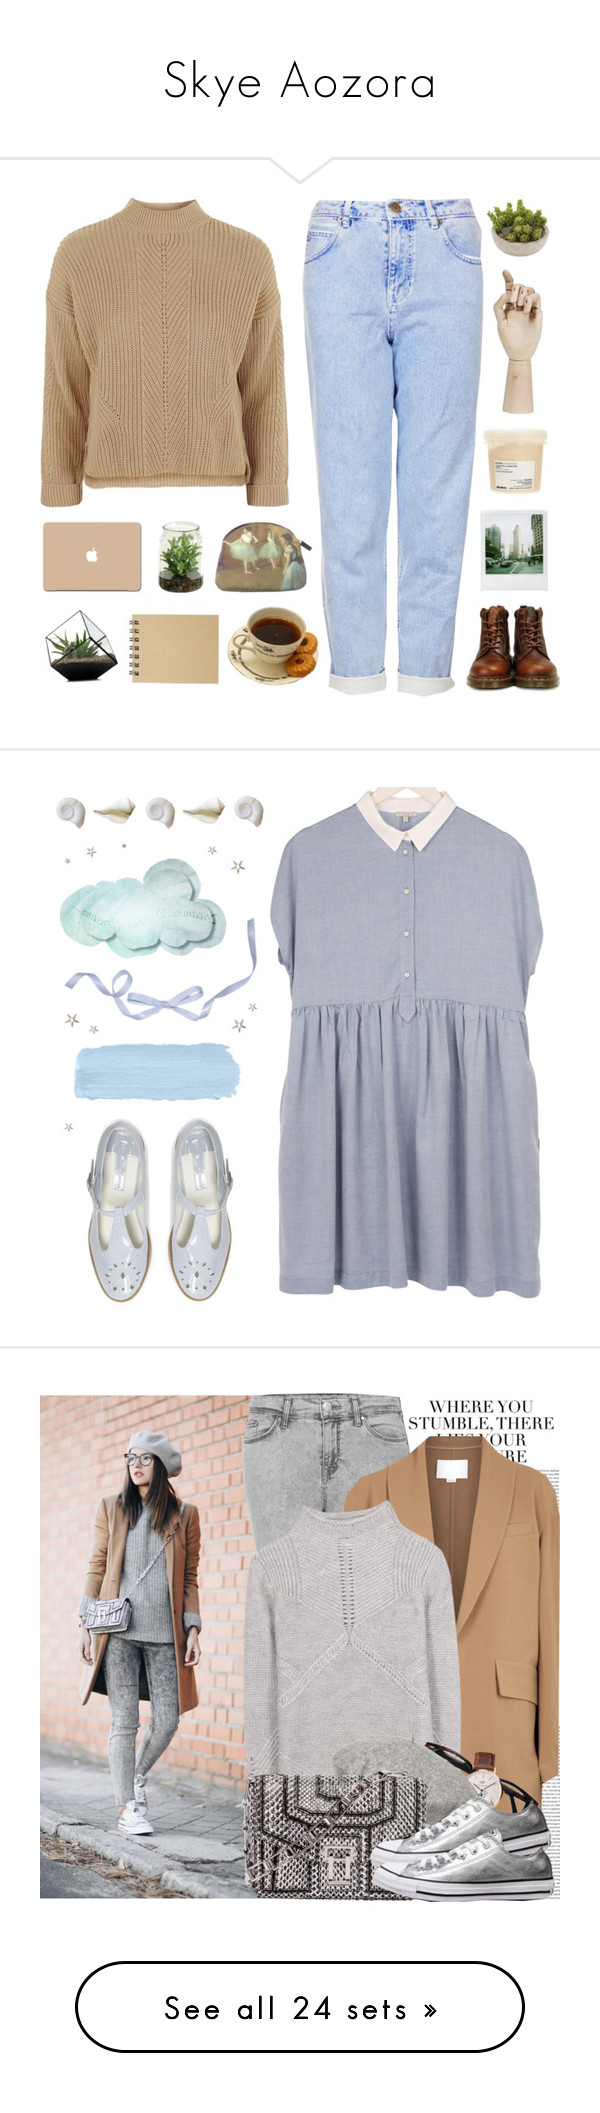 """Skye Aozora"" by karabreslin ❤ liked on Polyvore featuring Topshop, Dr. Martens, Polaroid, Davines, HAY, 3M, Muji, dress, lavender and dresses"